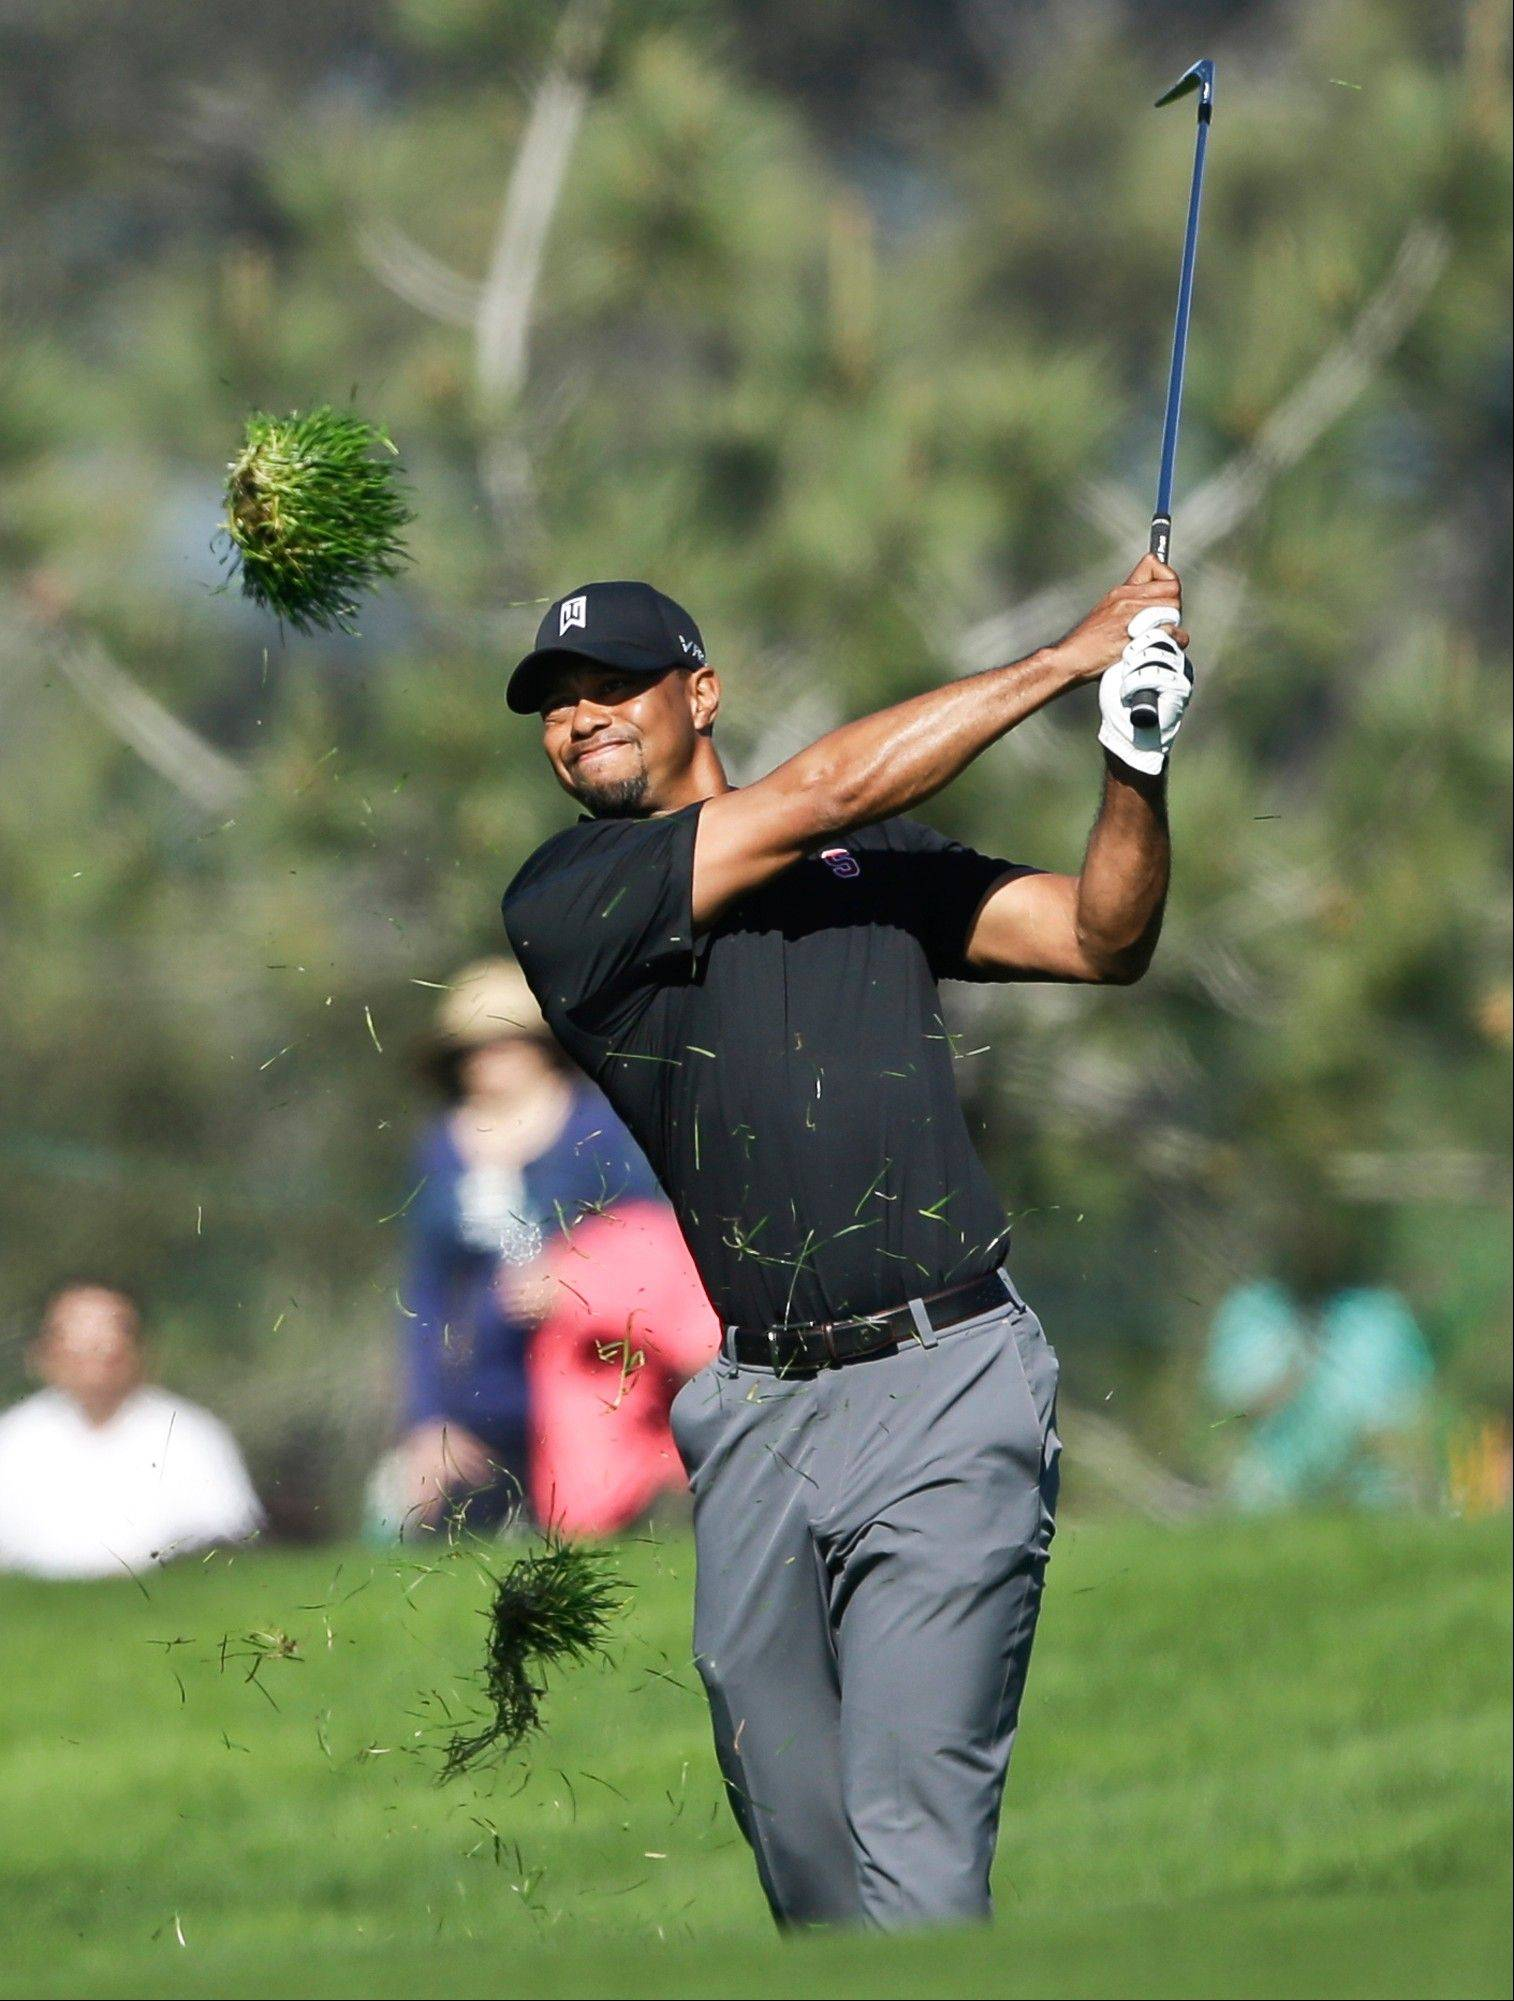 Tiger Woods watches his approach shot on the second hole of the South Course at Torrey Pines during the third round of the Farmers Insurance Open golf tournament Saturday, Jan. 25, 2014, in San Diego. Woods bogeyed the hole.